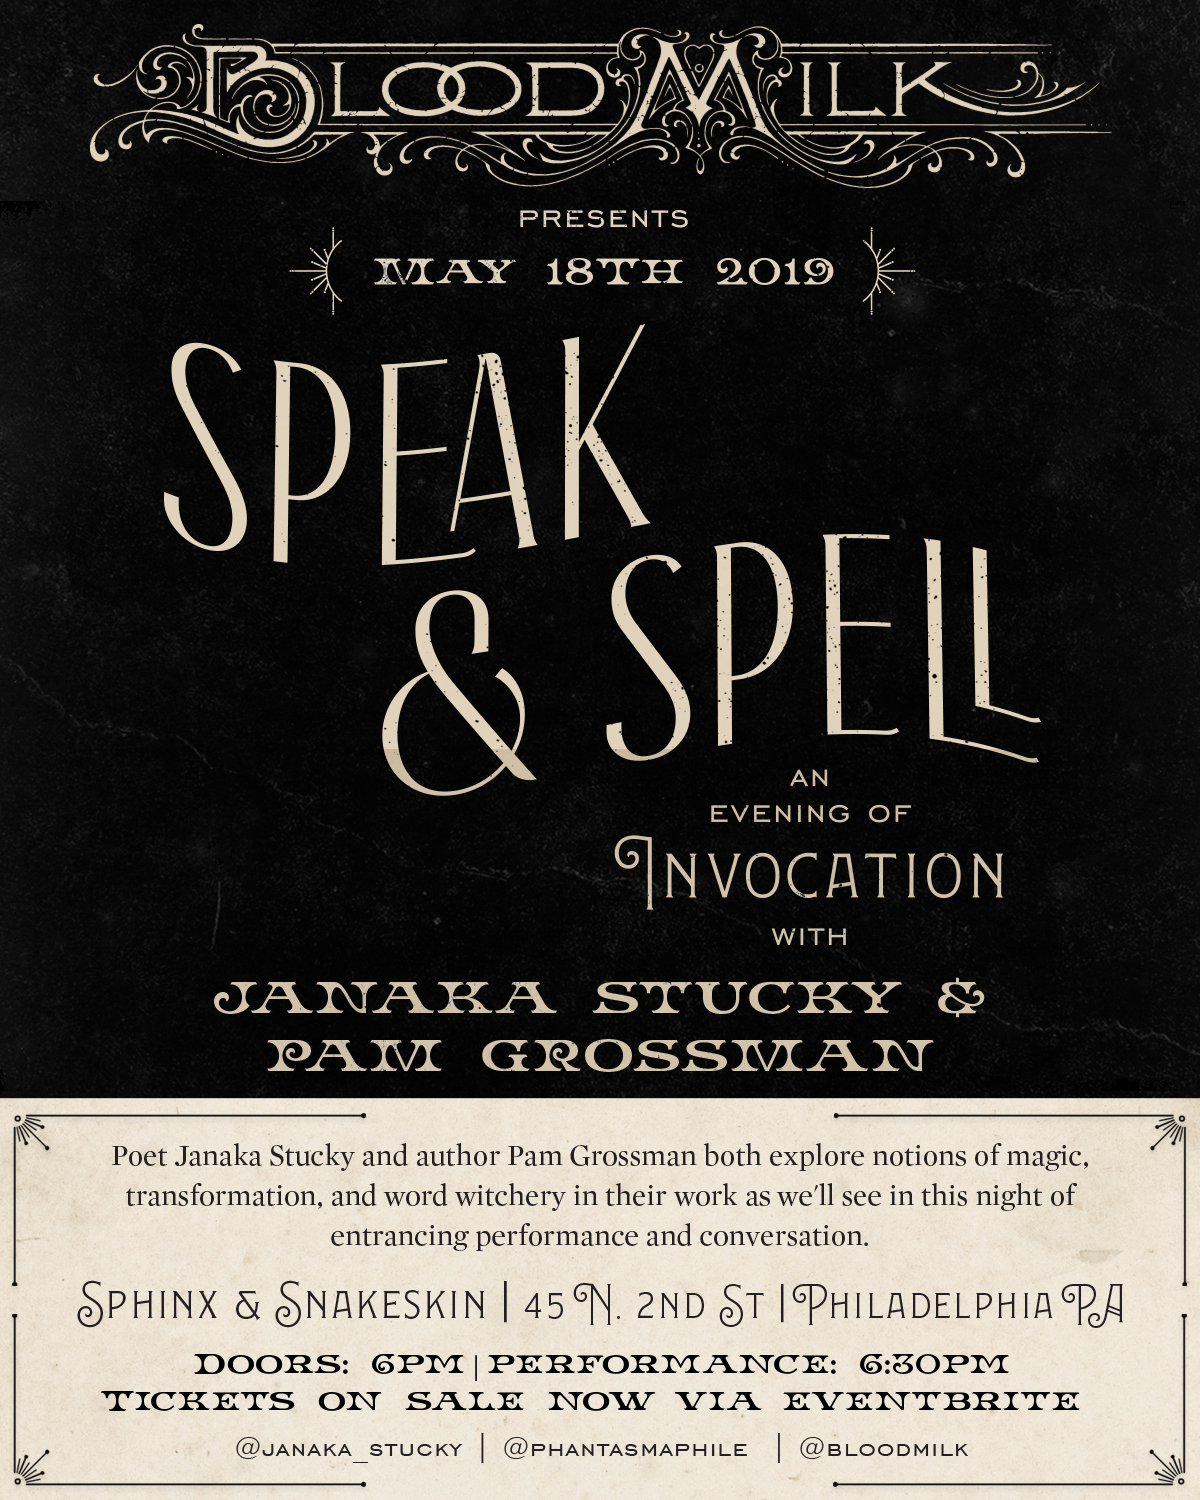 SpeakAndSpell-2019-InstagramReady-Revised1.jpg